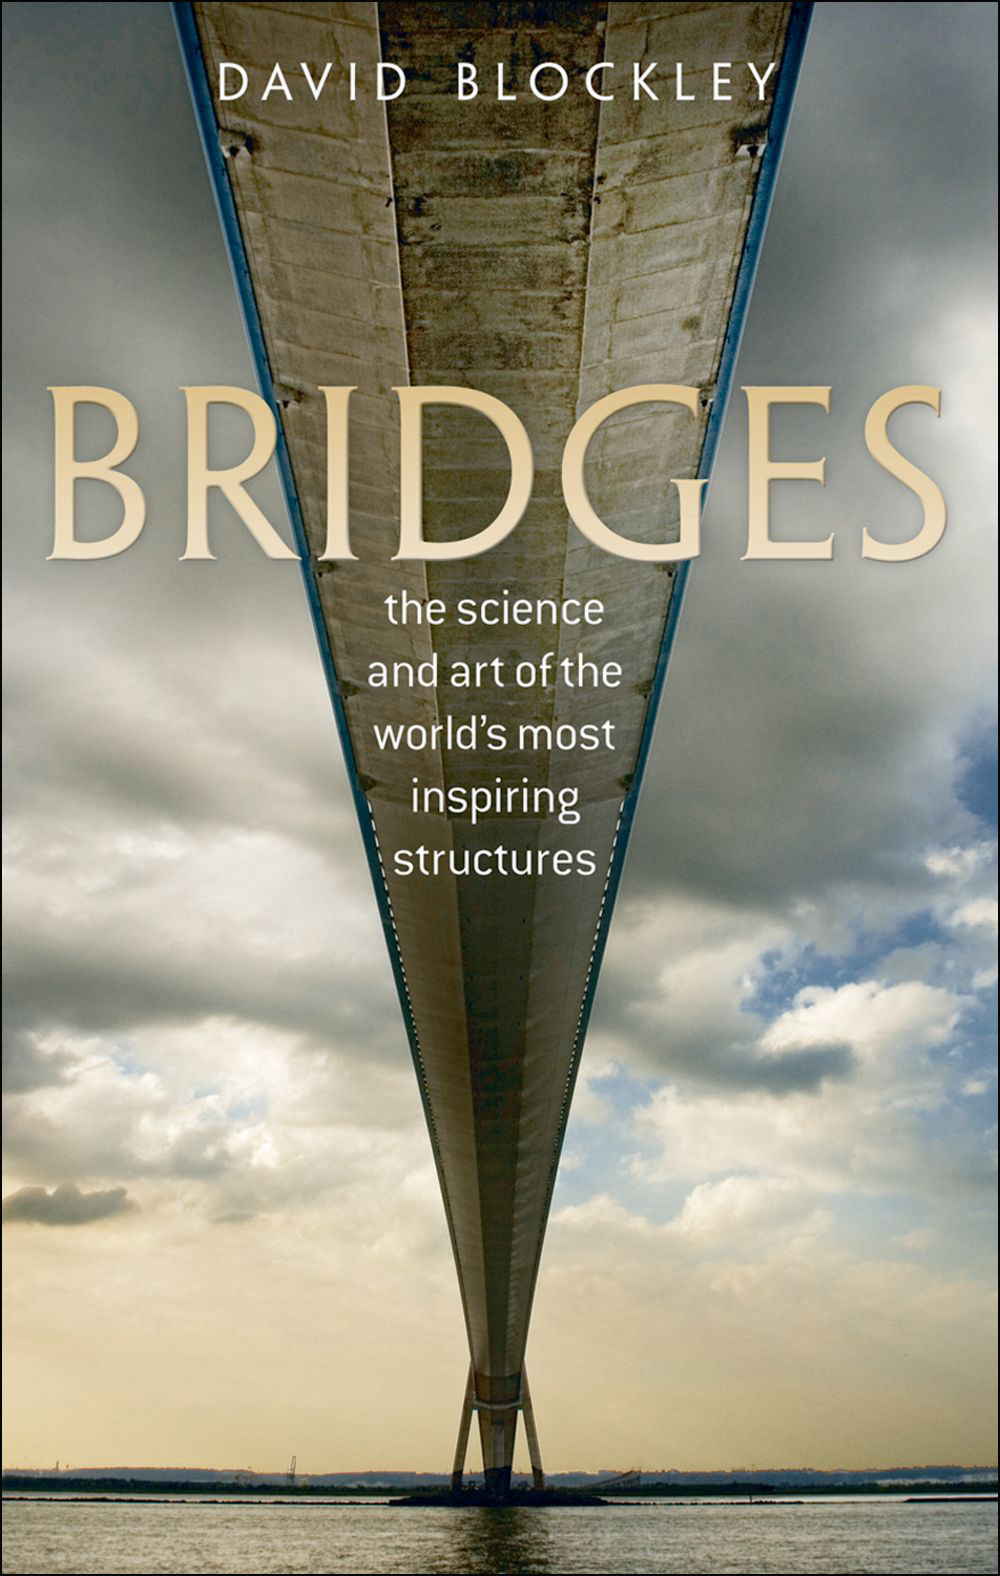 Bridges:The science and art of the world's most inspiring structures